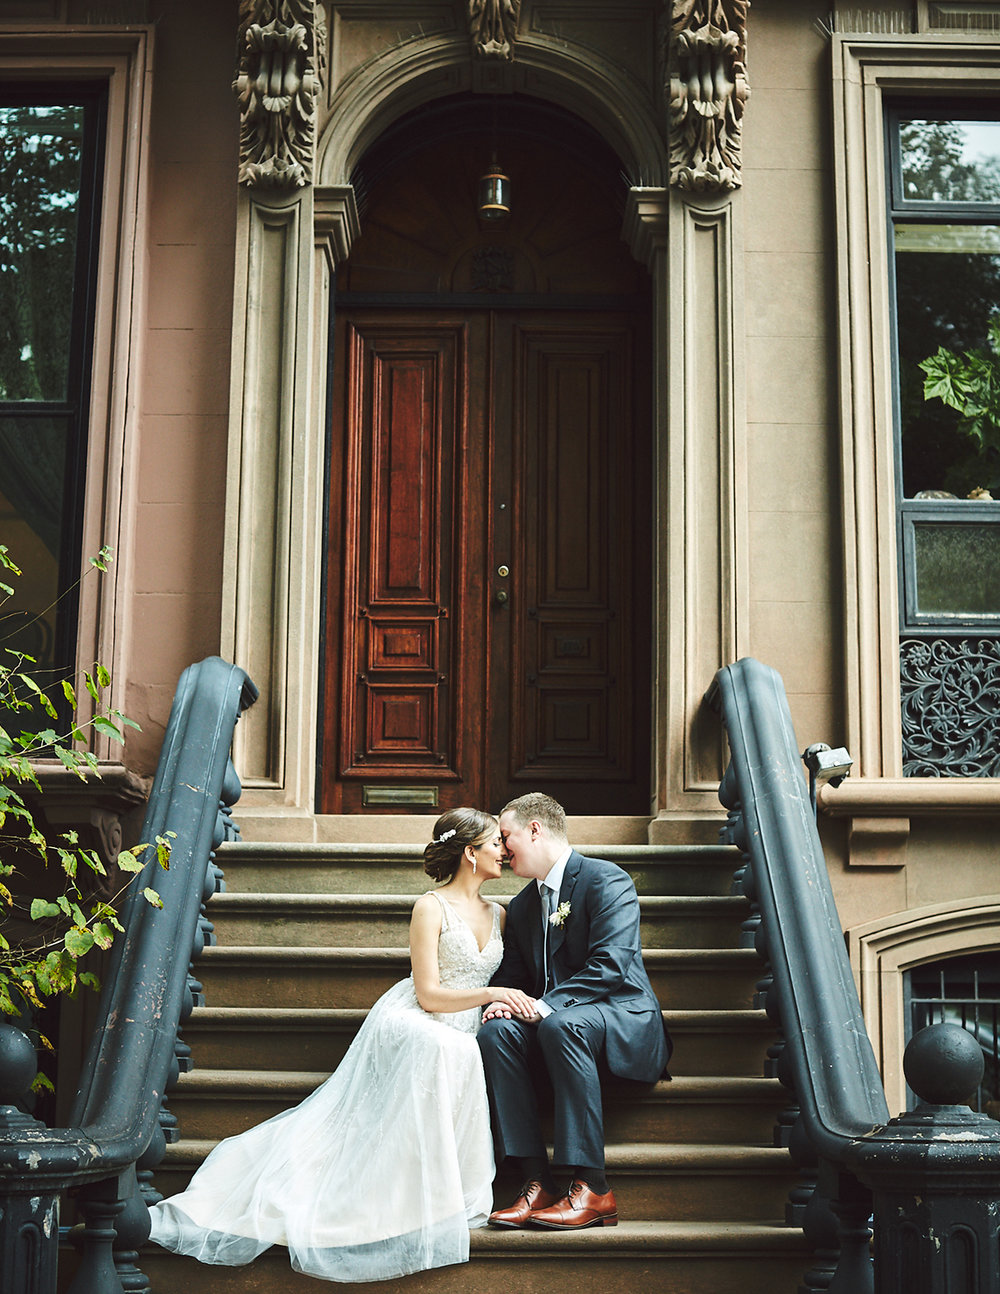 181007_MaisonMayBrooklynWeddingPhotography_FortGreeneWeddingPhotographer_By_BriJohnsonWeddings_0026.jpg